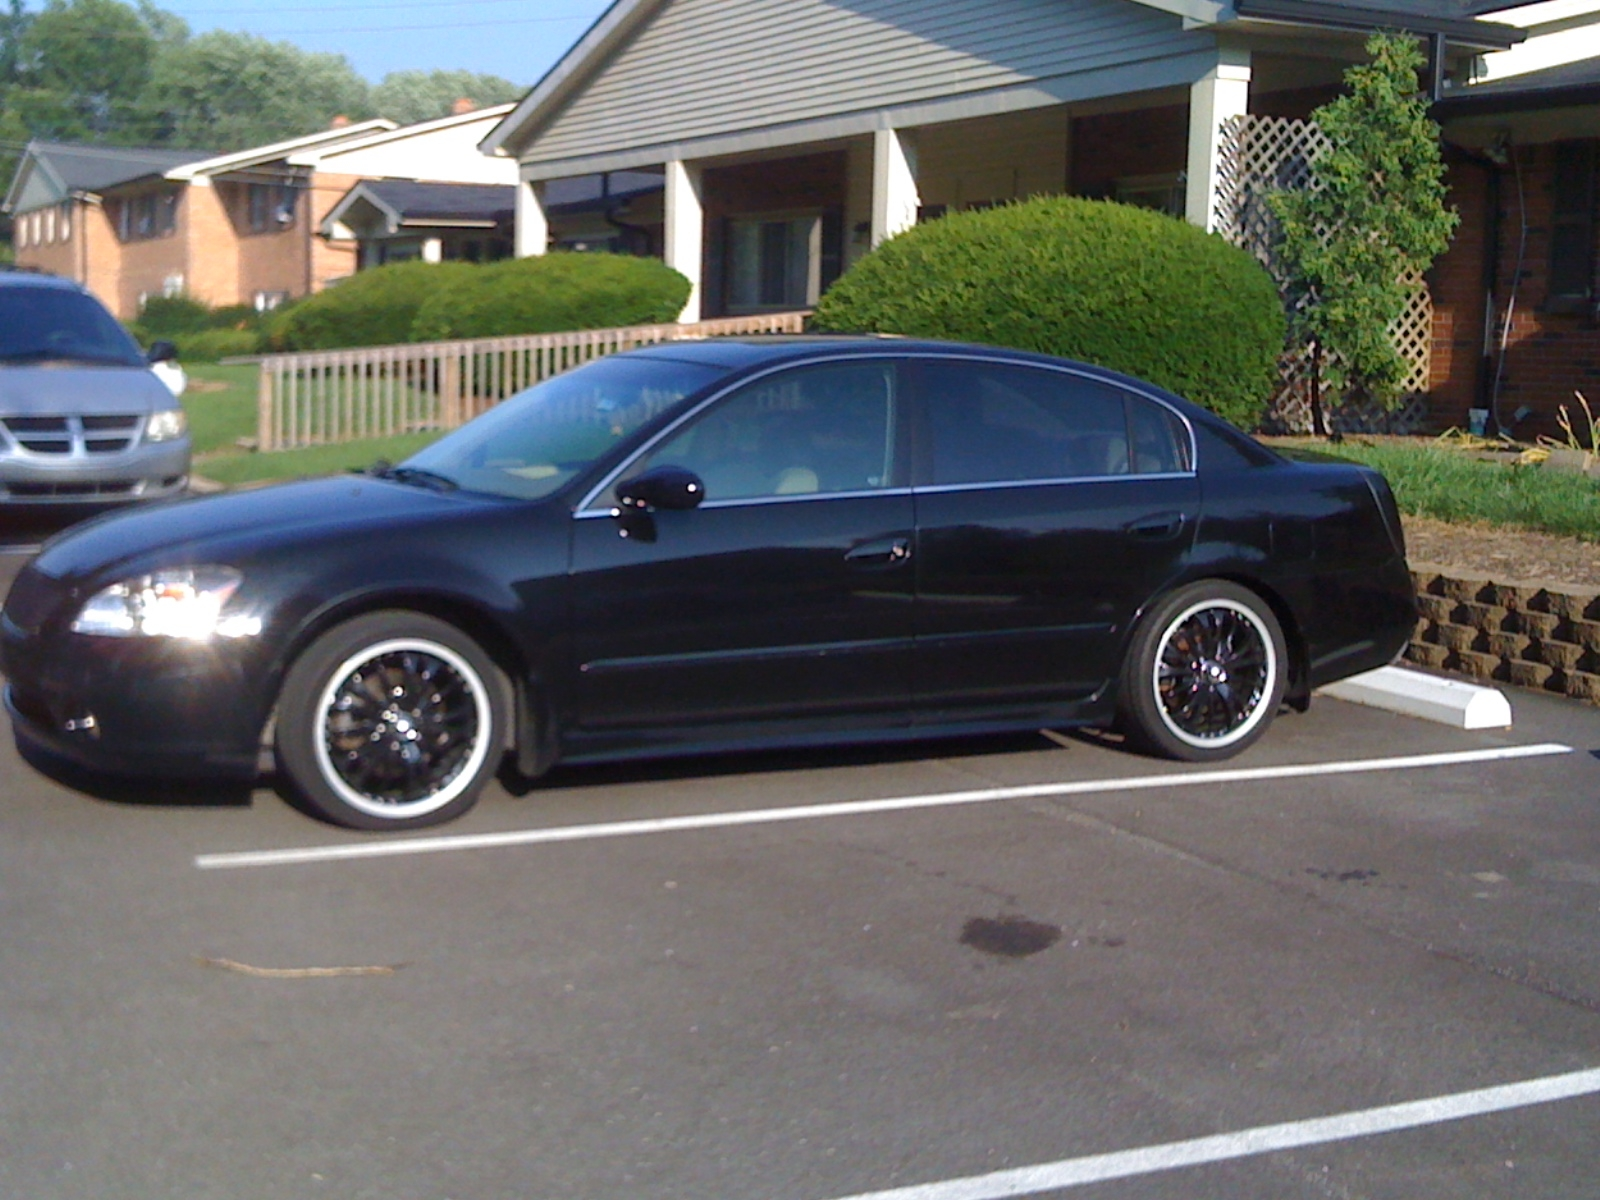 philds01 2002 Nissan Altima Specs Photos Modification Info at